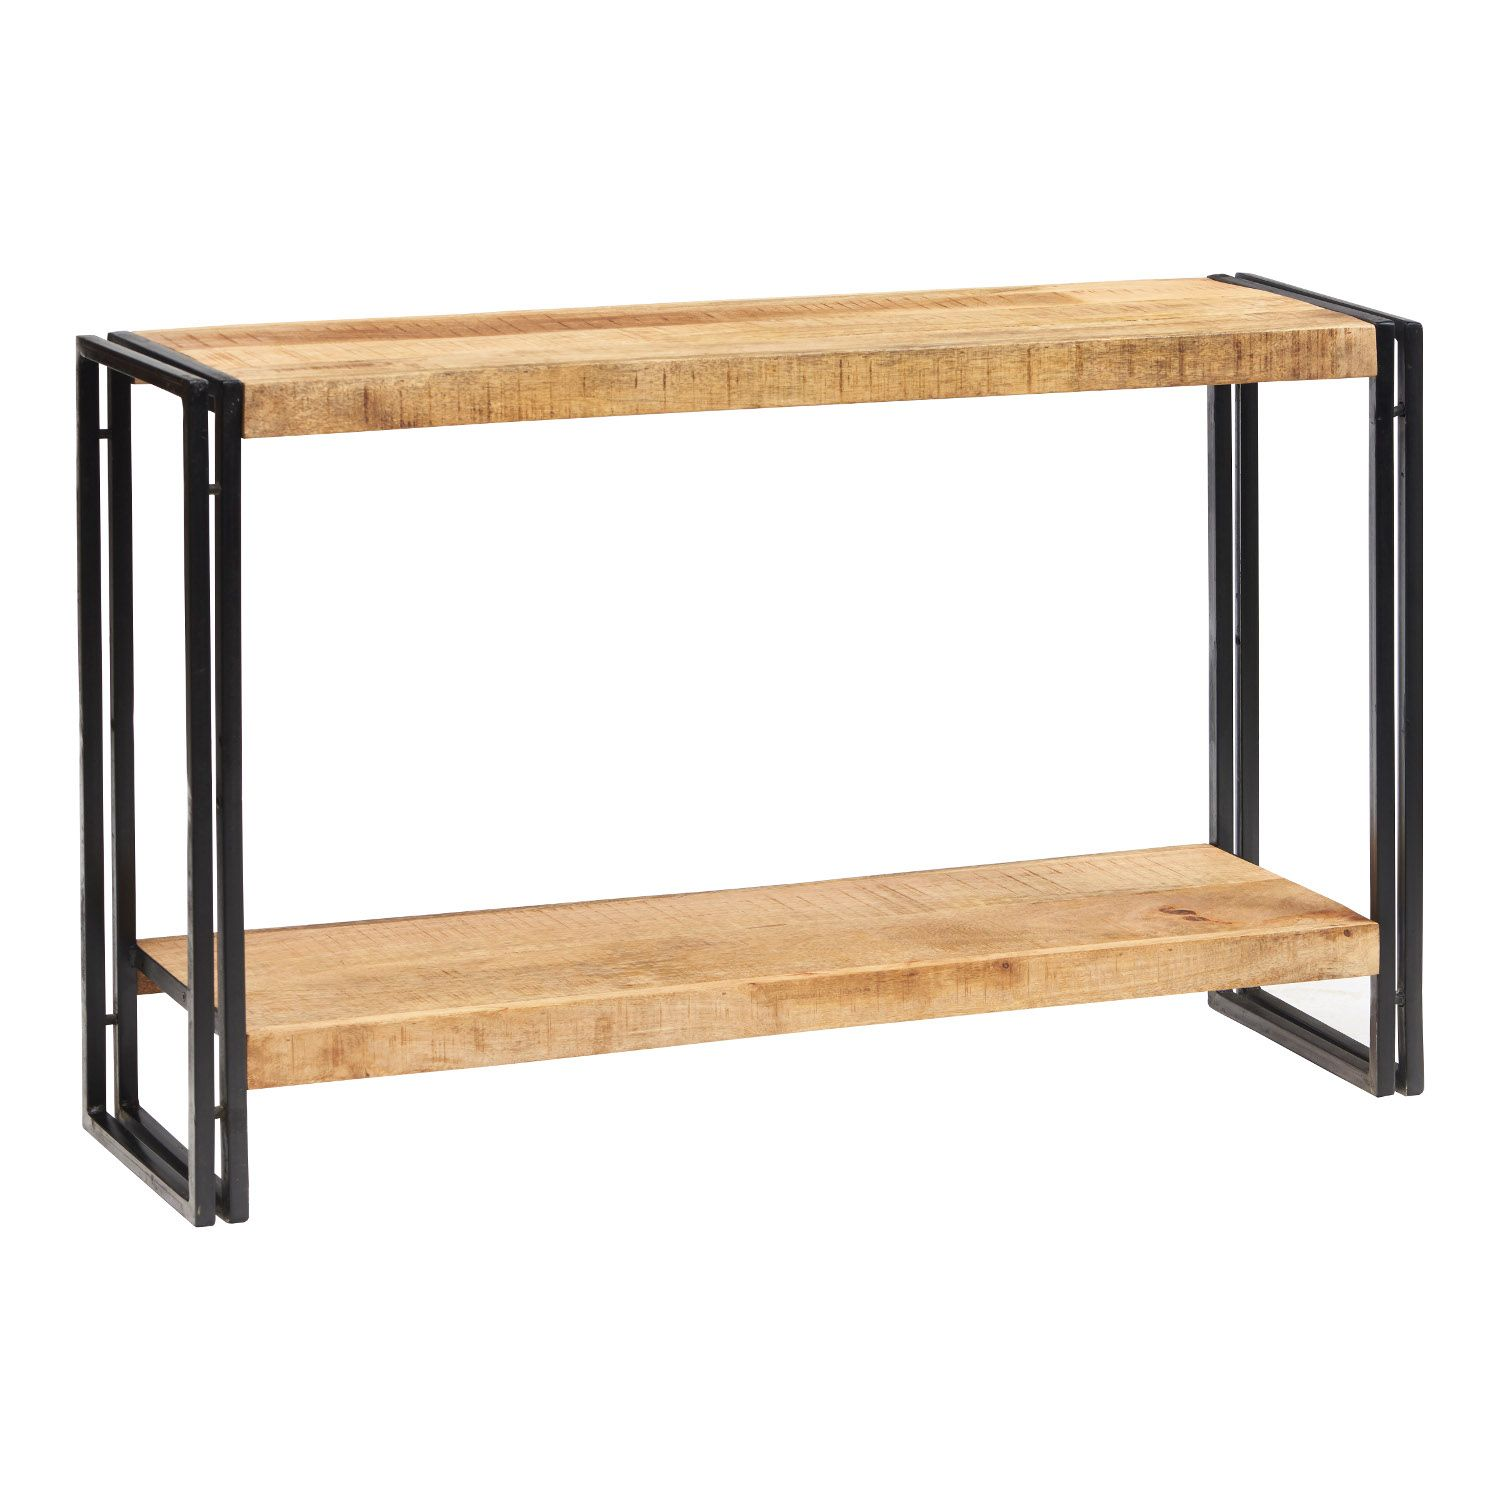 Cosmo Industrial Console Table Next Day Delivery Cosmo Industrial